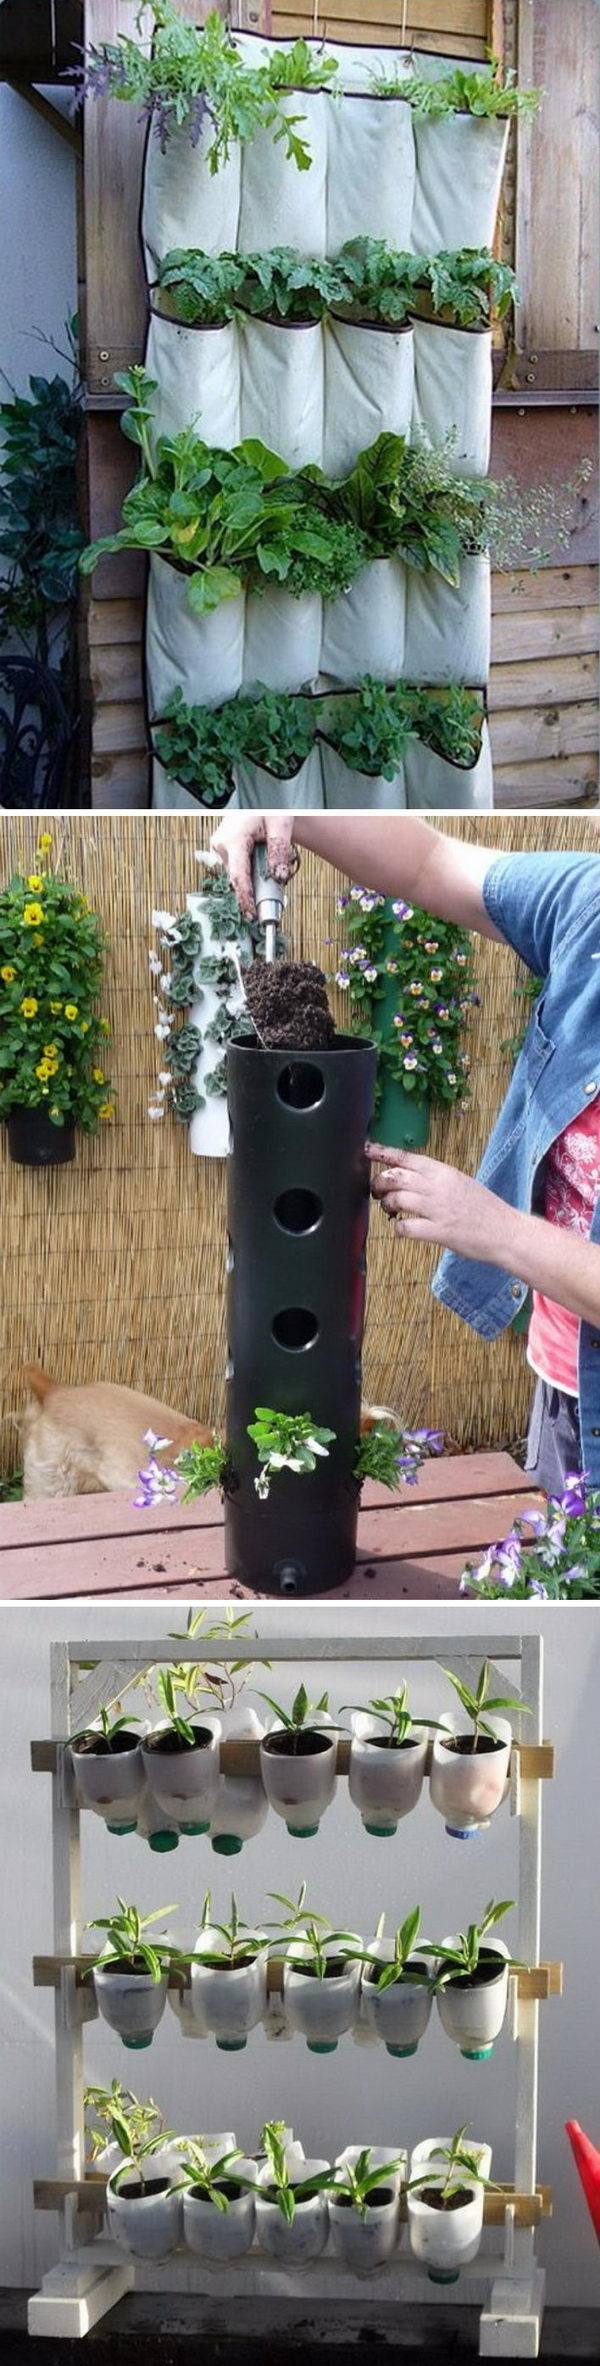 Indoor Hanging Garden Ideas Part - 25: Cool Indoor And Outdoor Vertical Garden Ideas.